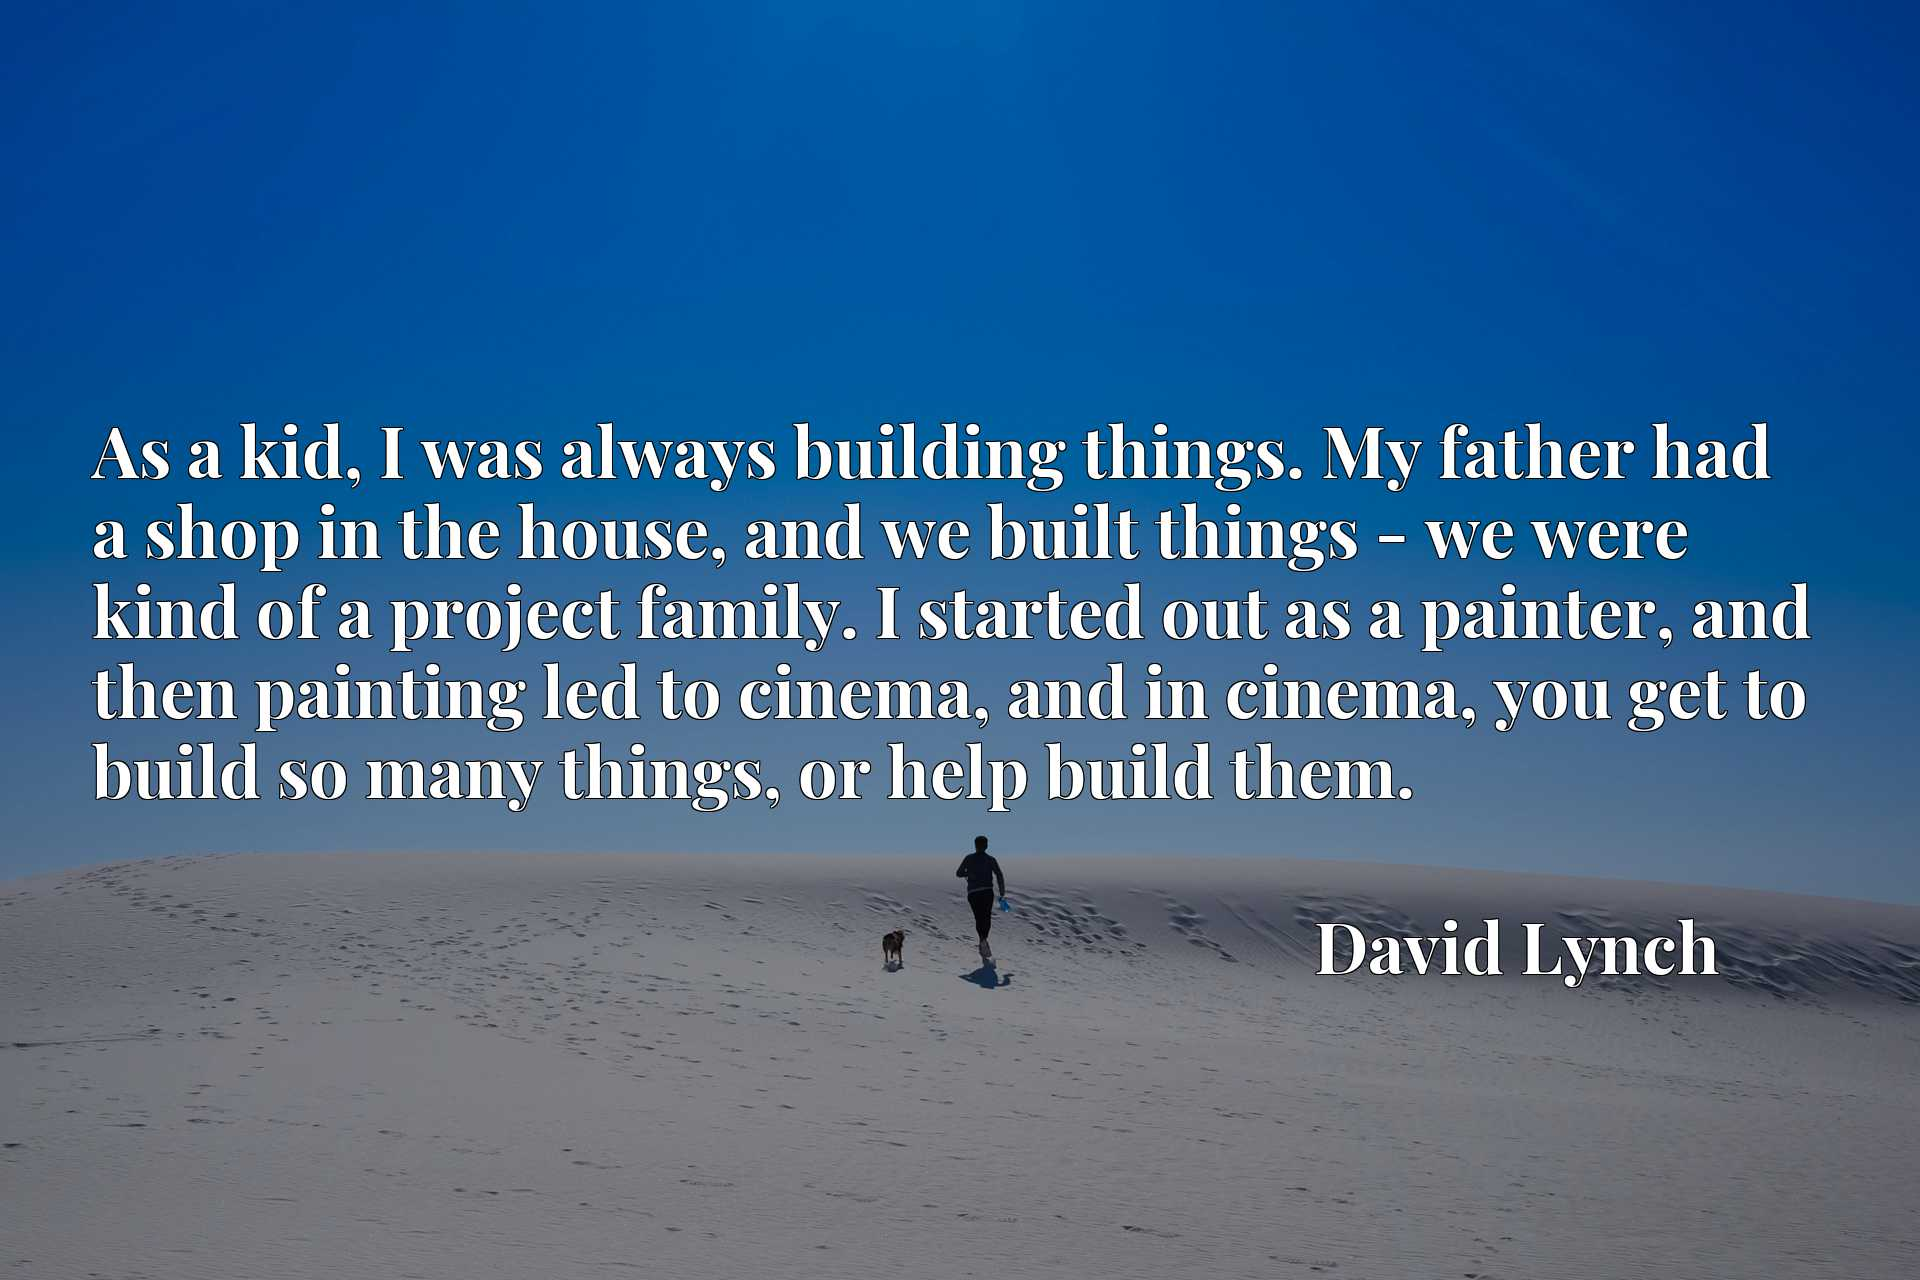 As a kid, I was always building things. My father had a shop in the house, and we built things - we were kind of a project family. I started out as a painter, and then painting led to cinema, and in cinema, you get to build so many things, or help build them.